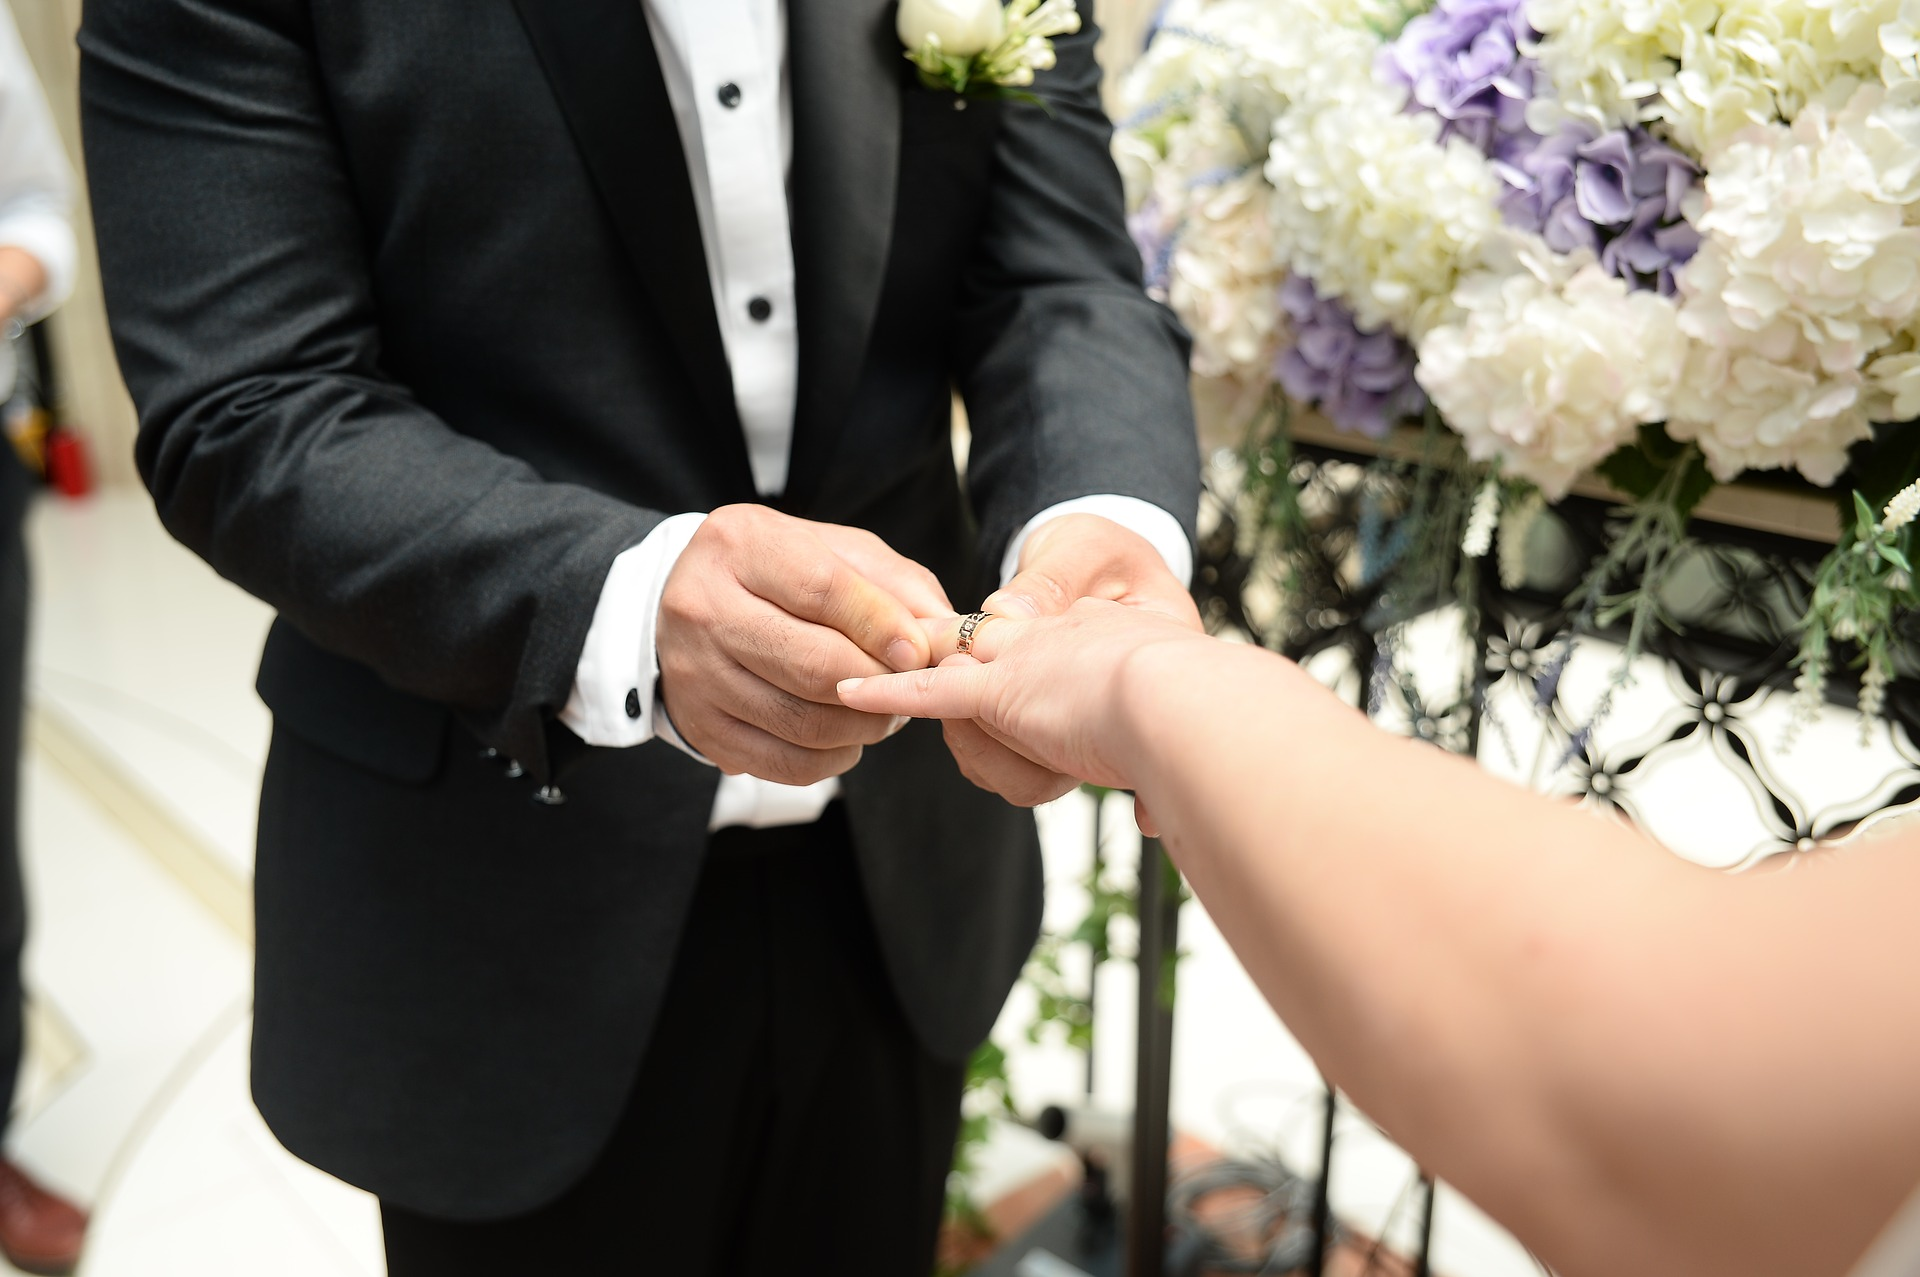 Man putting a ring on his bride's finger